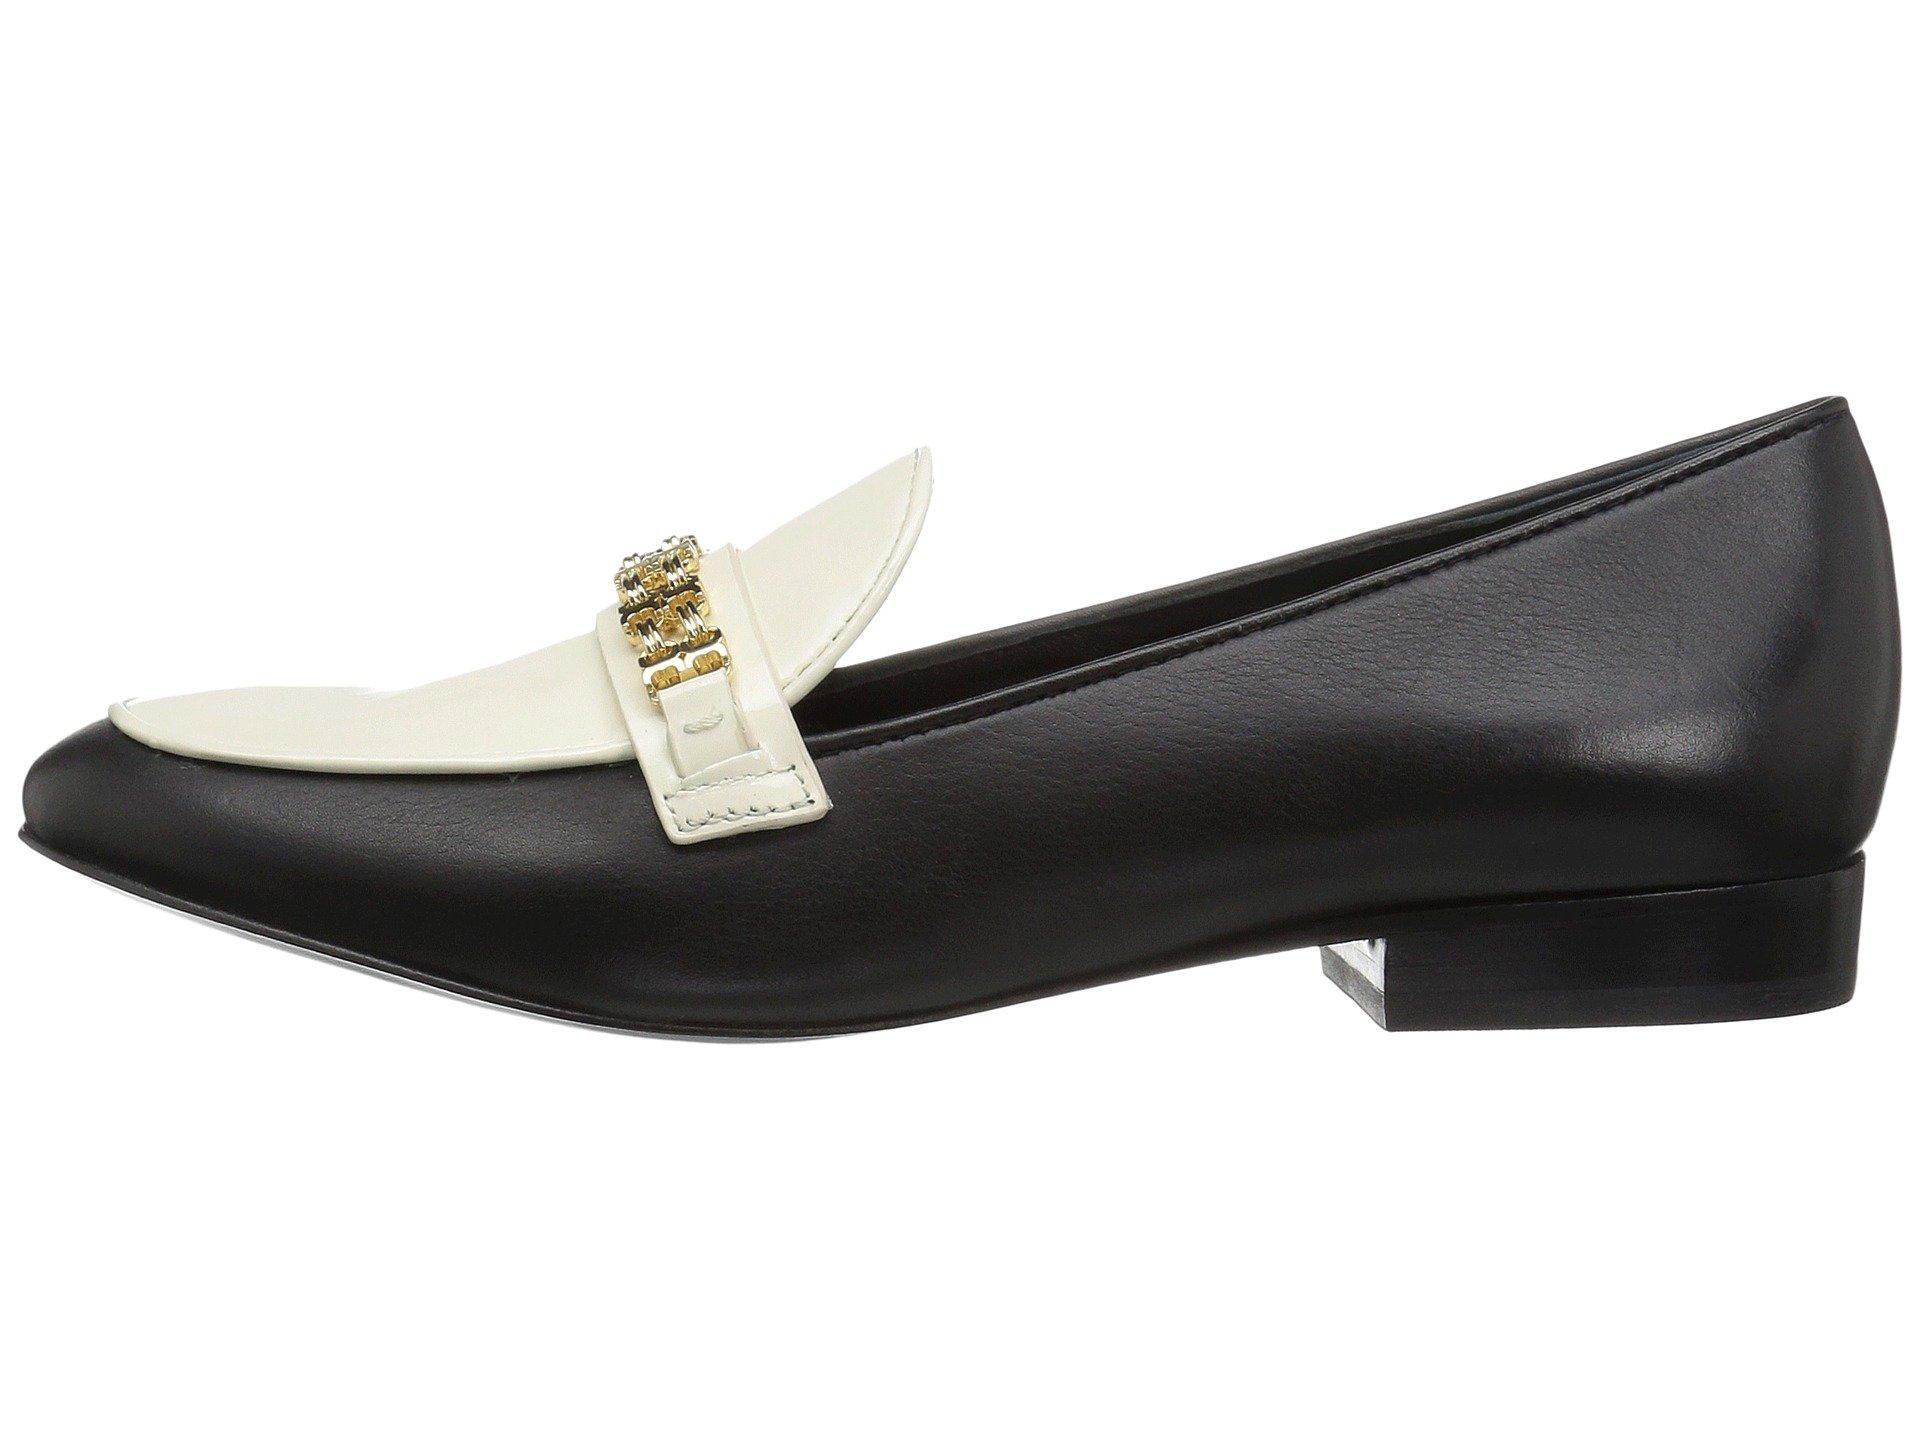 fea71848e2bc01 Tory Burch Gemini Link Black Leather And Bleach Patent Leather Loafer Shoe  In Black Bleach